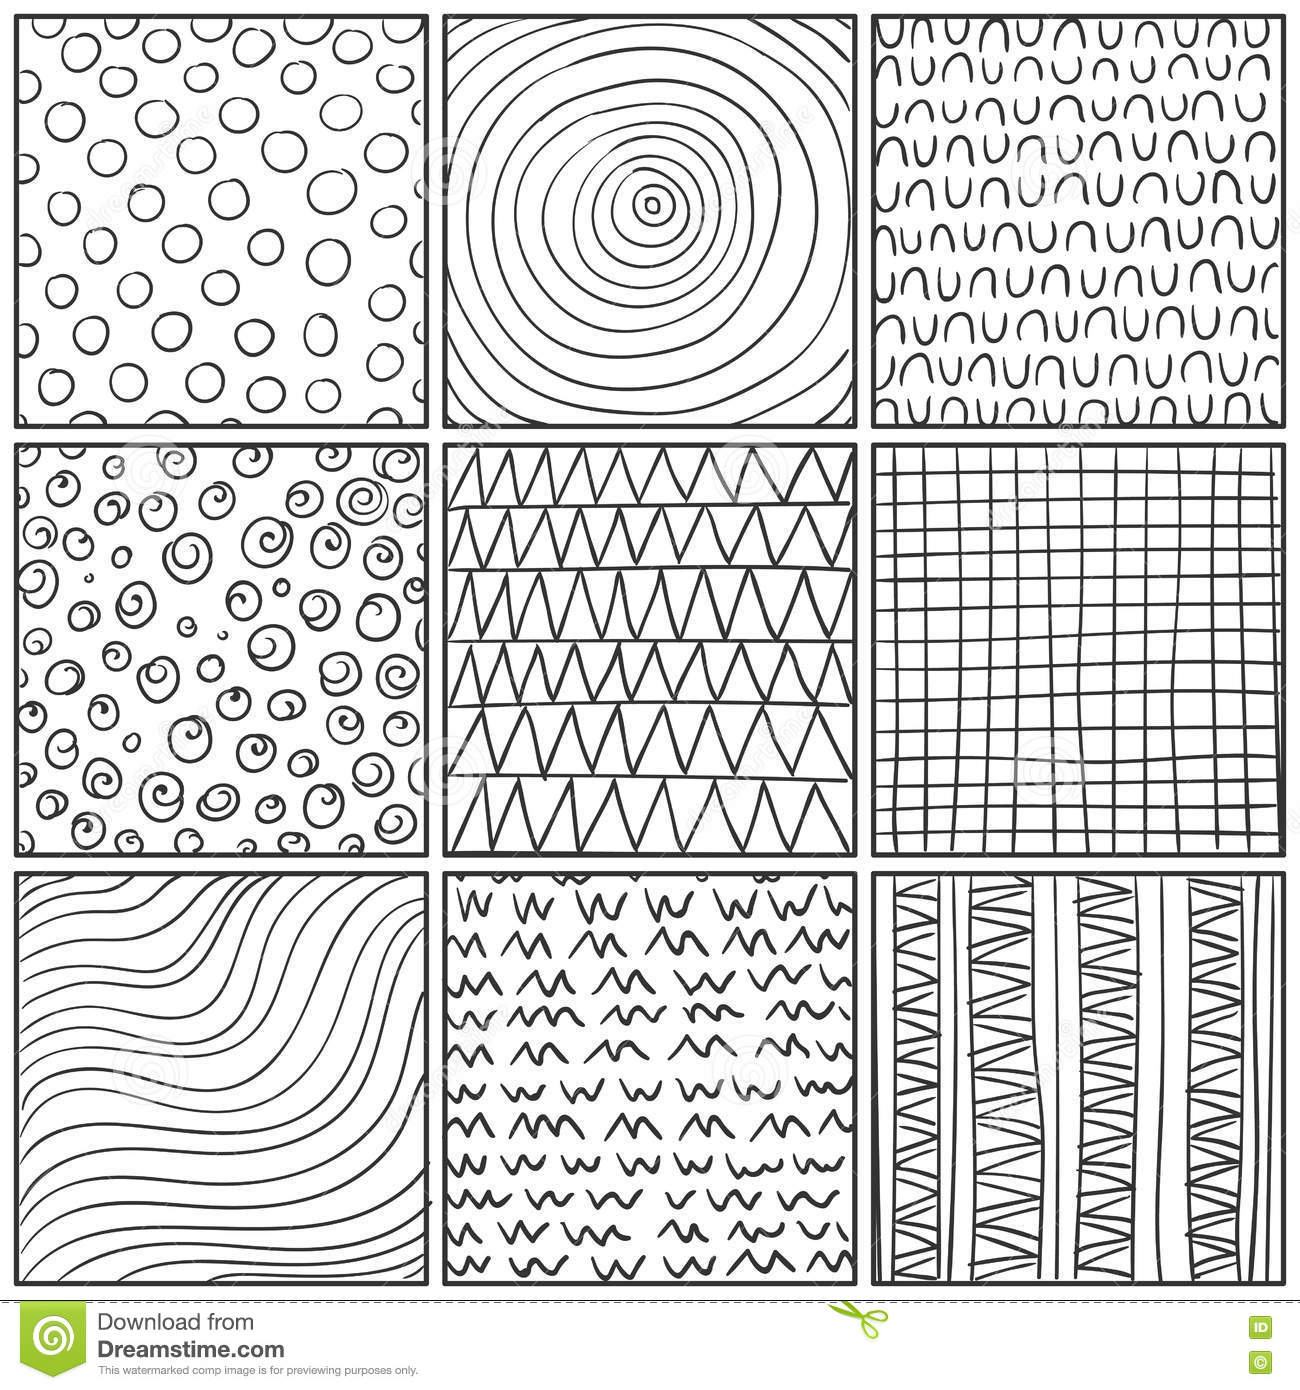 Abstract Line Art Design : Abstract line drawing design elements stock illustration